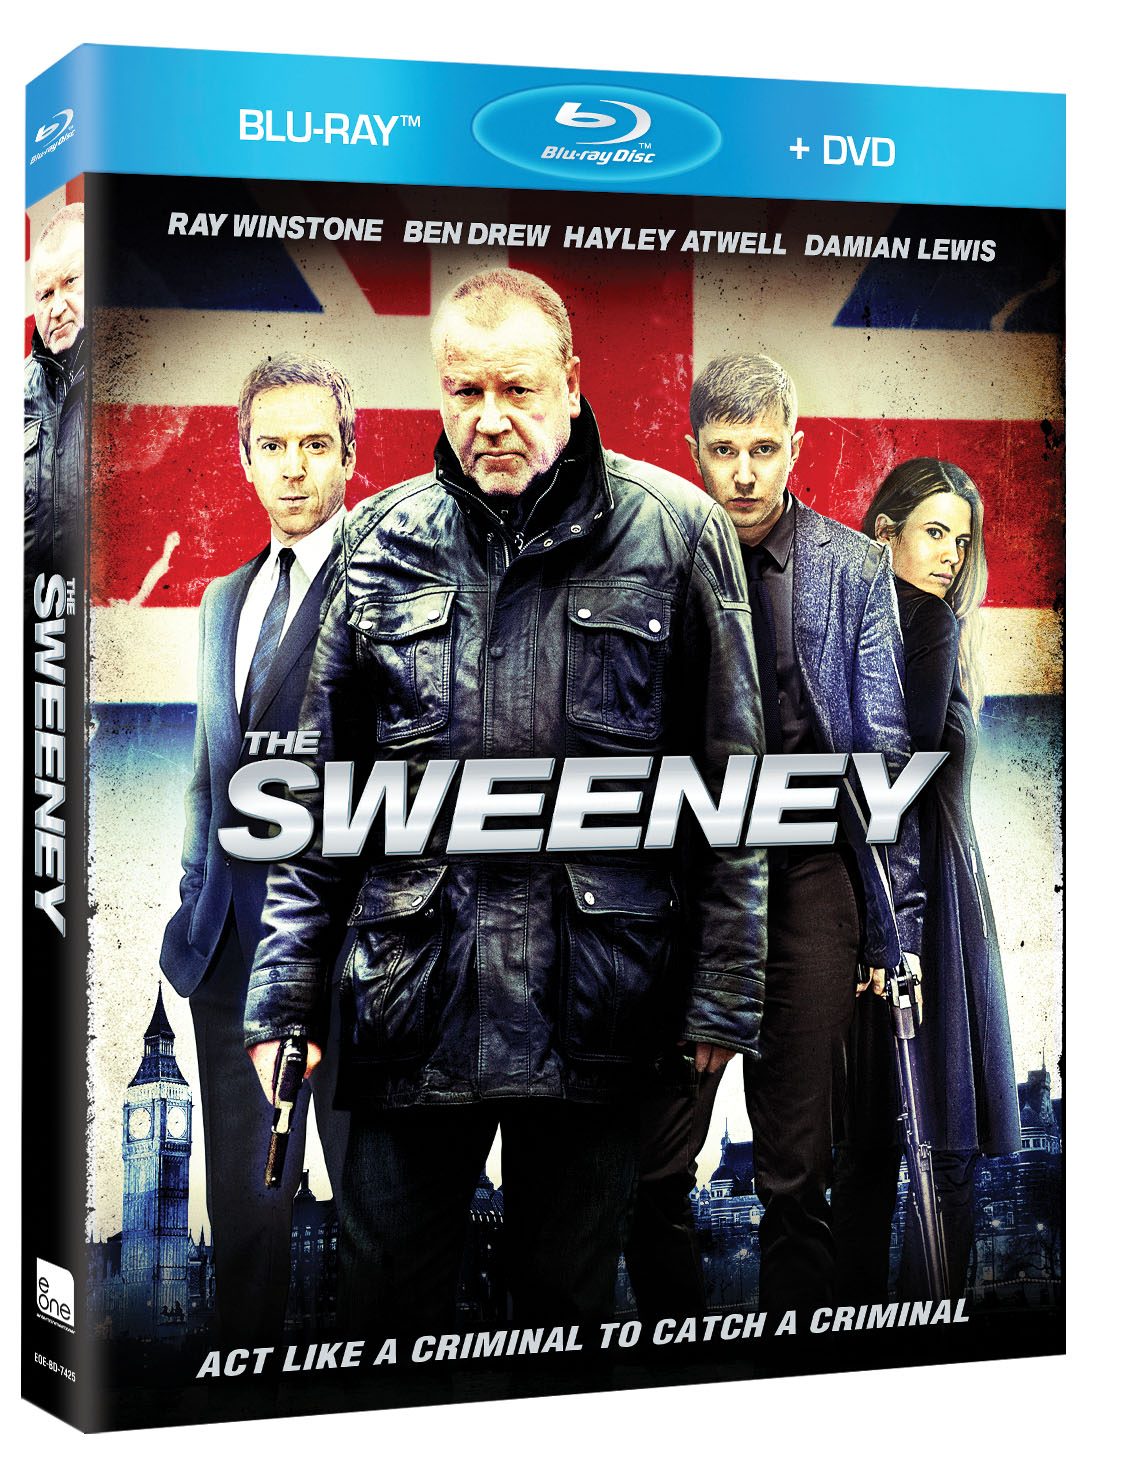 Blu-ray Review: 'The Sweeney' is as Strong as Ray Winstone's Performance